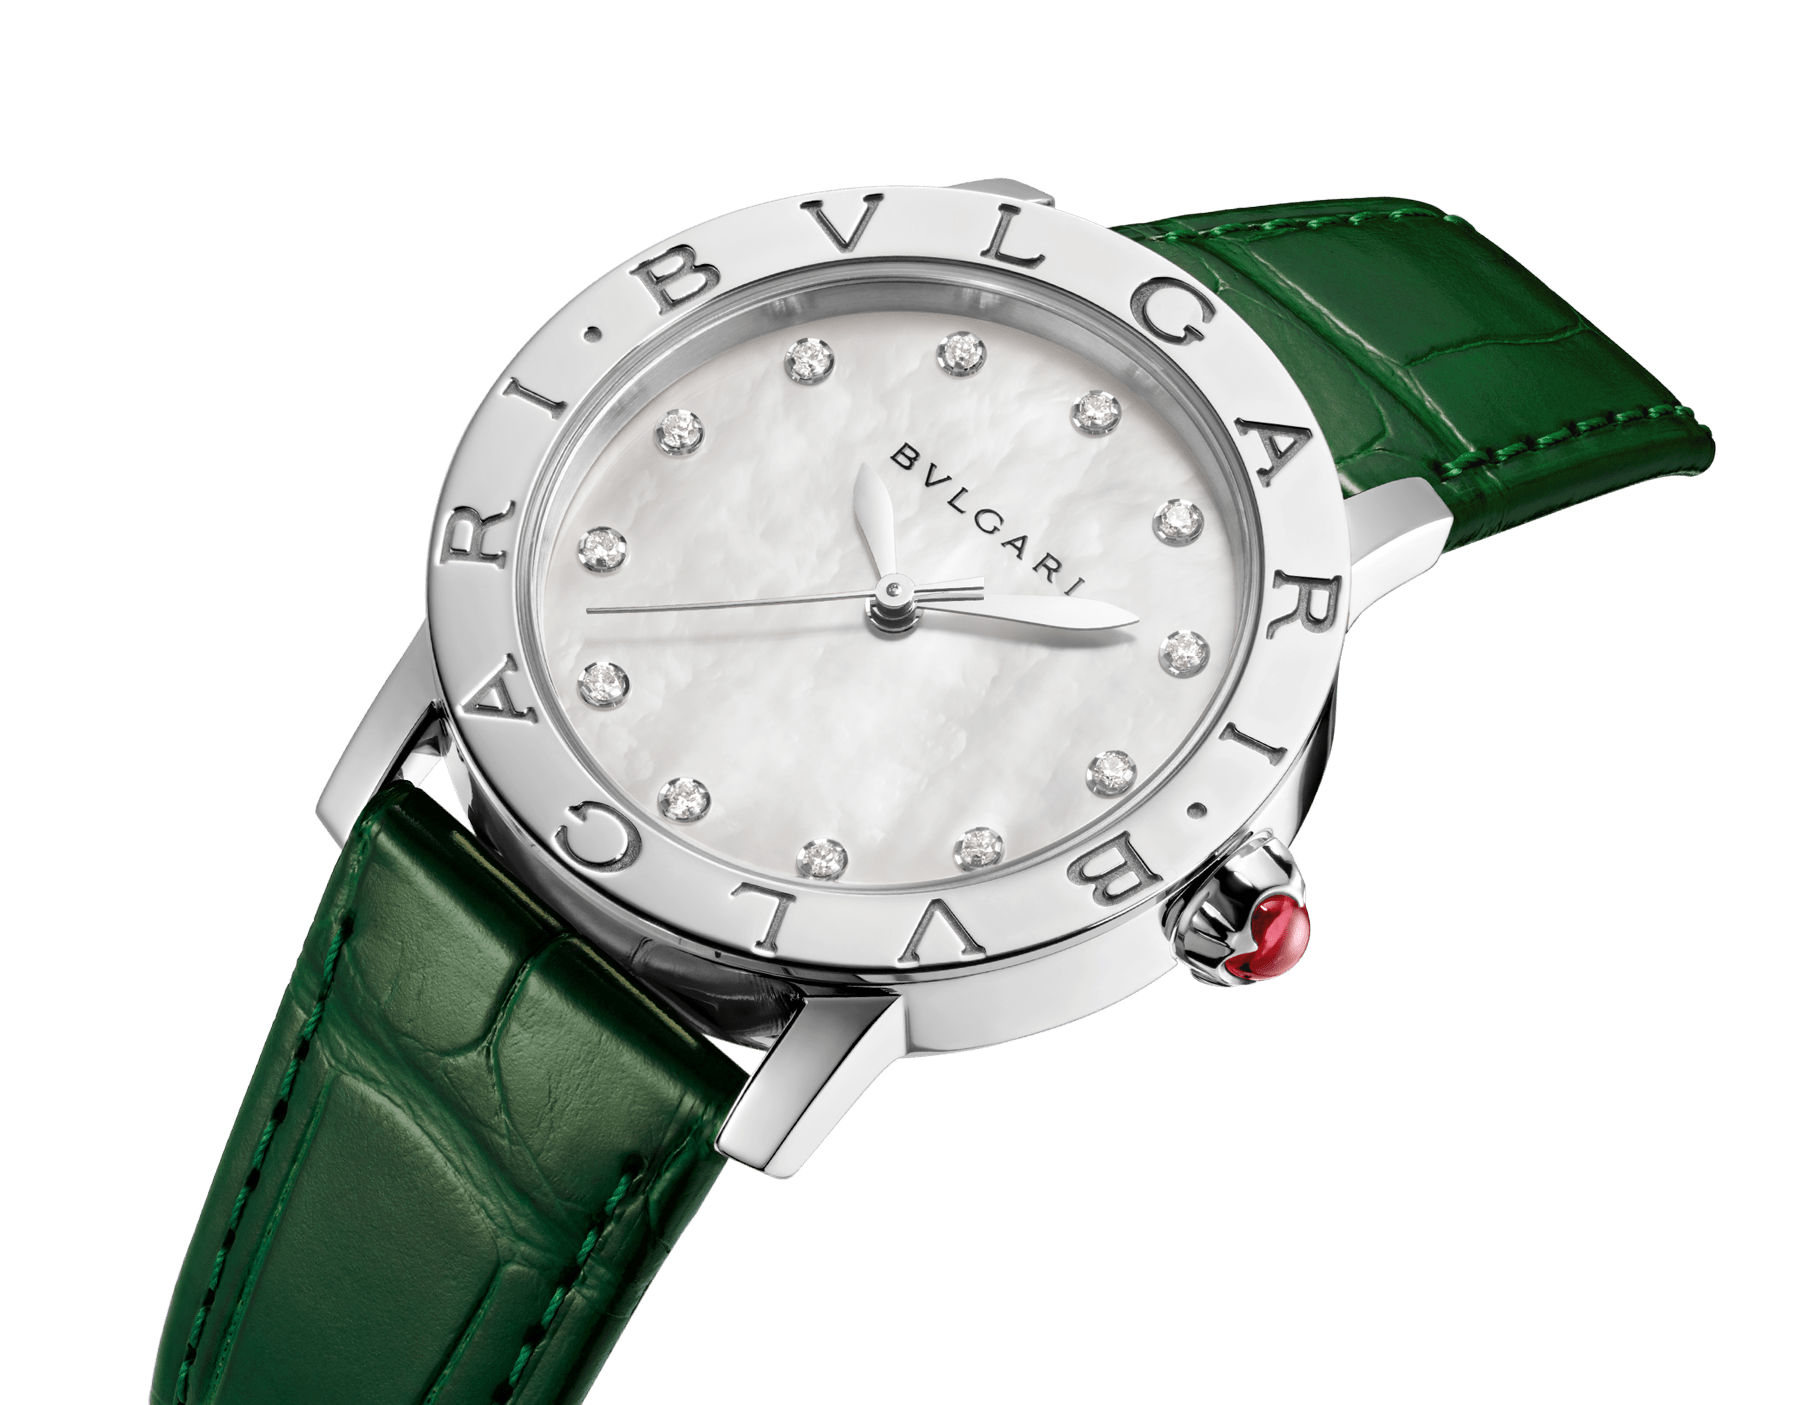 BVLGARI BVLGARI watch with stainless steel case, white mother-of-pearl dial, diamond indexes and shiny green alligator bracelet 102746 image 2